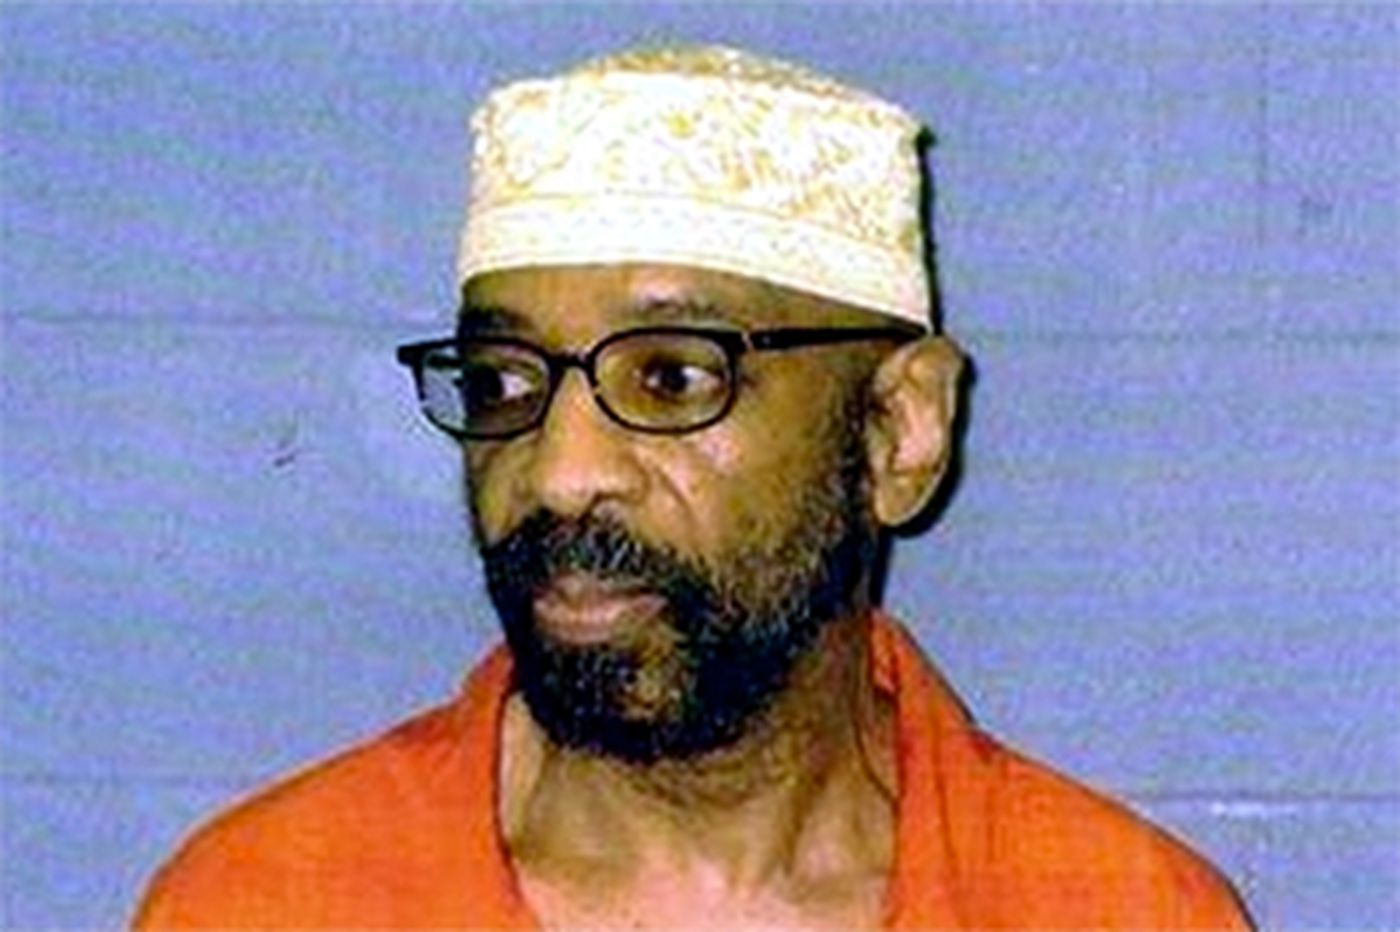 Out of solitary after 22 years and $99,000 richer, cop-killer Russell Shoatz ponders the rest of life in prison